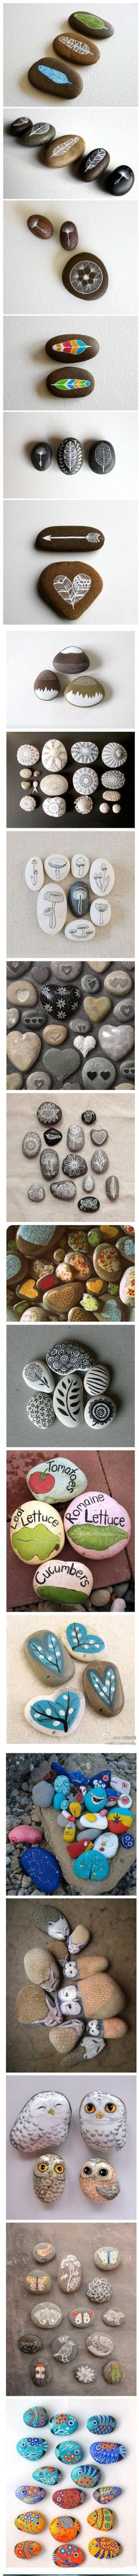 I want to paint rocks!